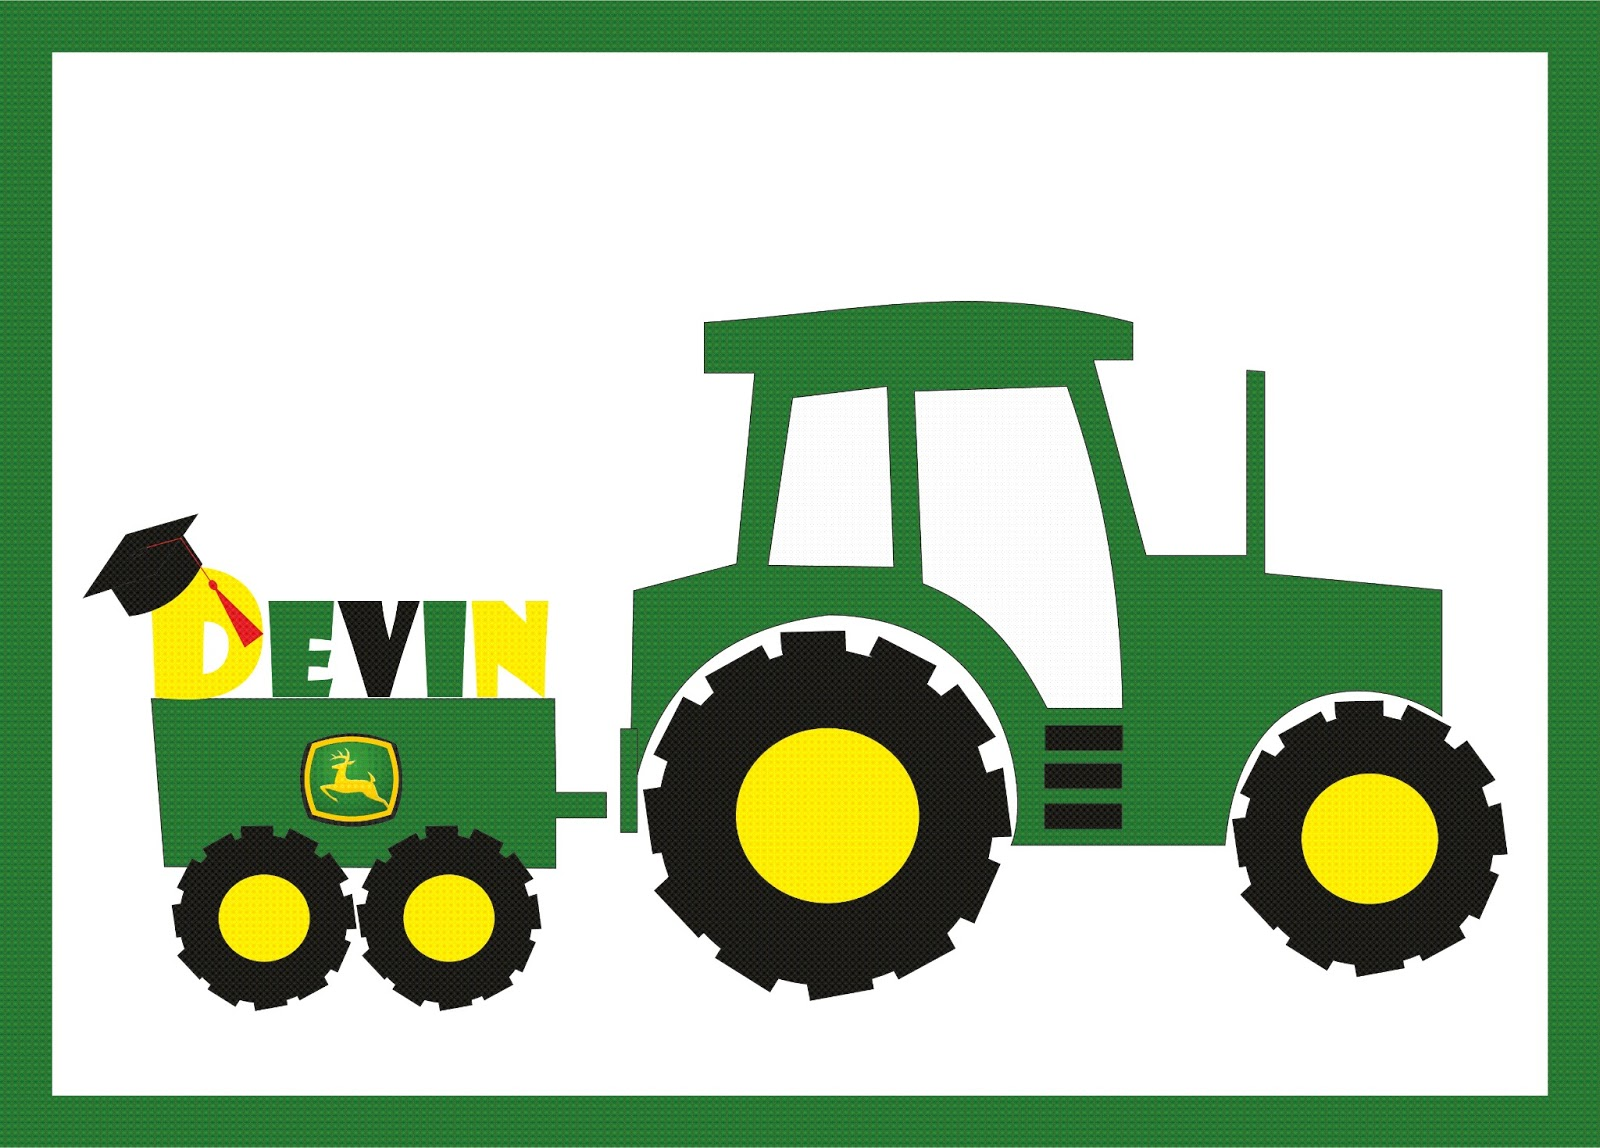 Tractor clipart #13, Download drawings